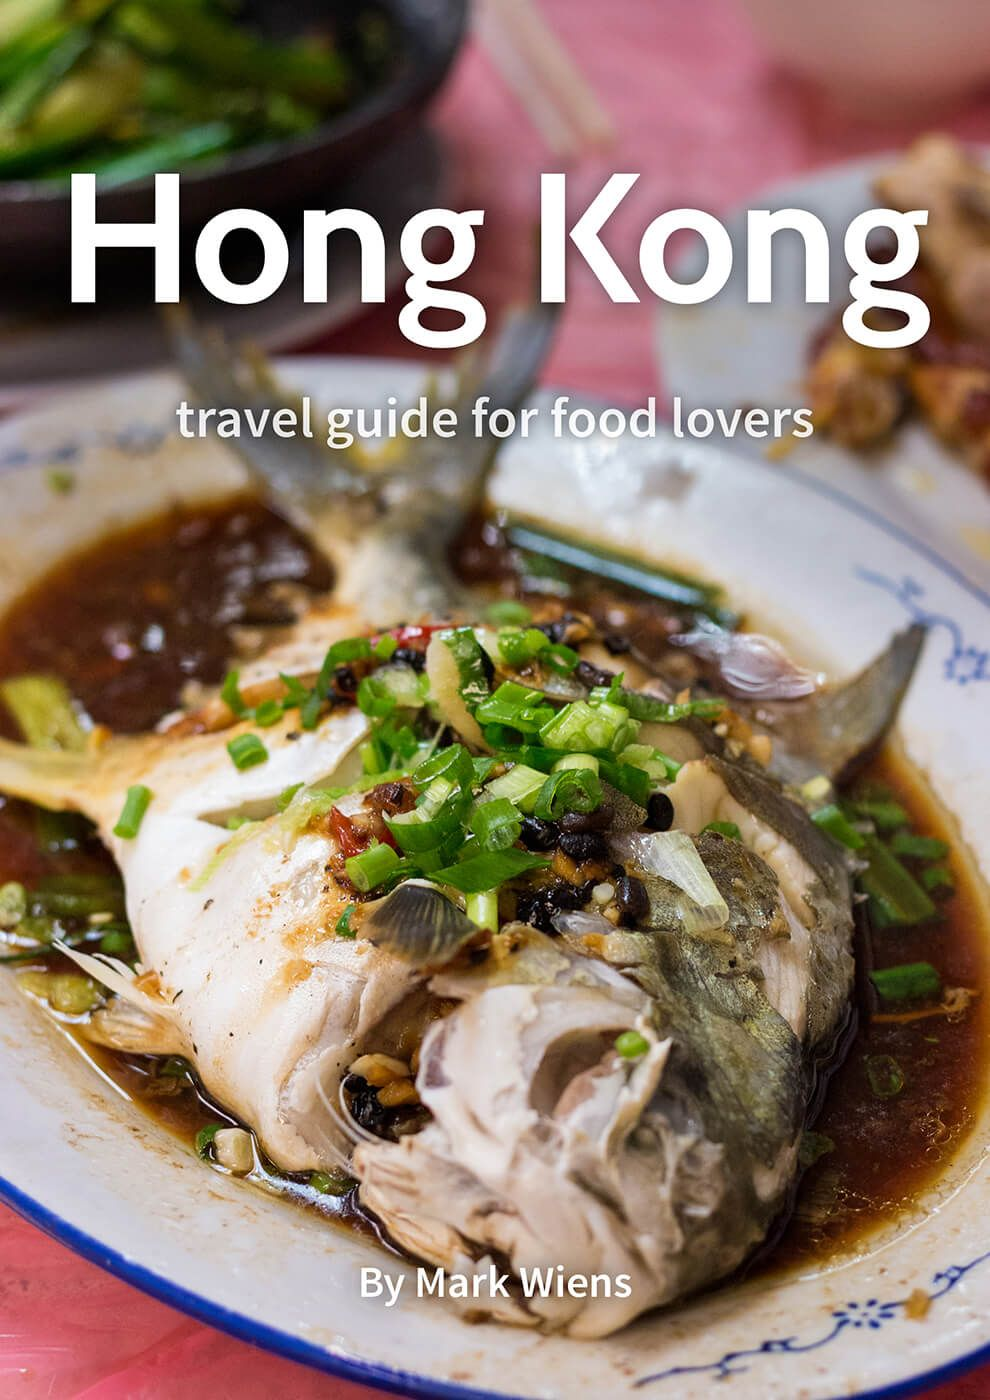 The ultimate hong kong travel guide for food lovers pdf download forumfinder Images